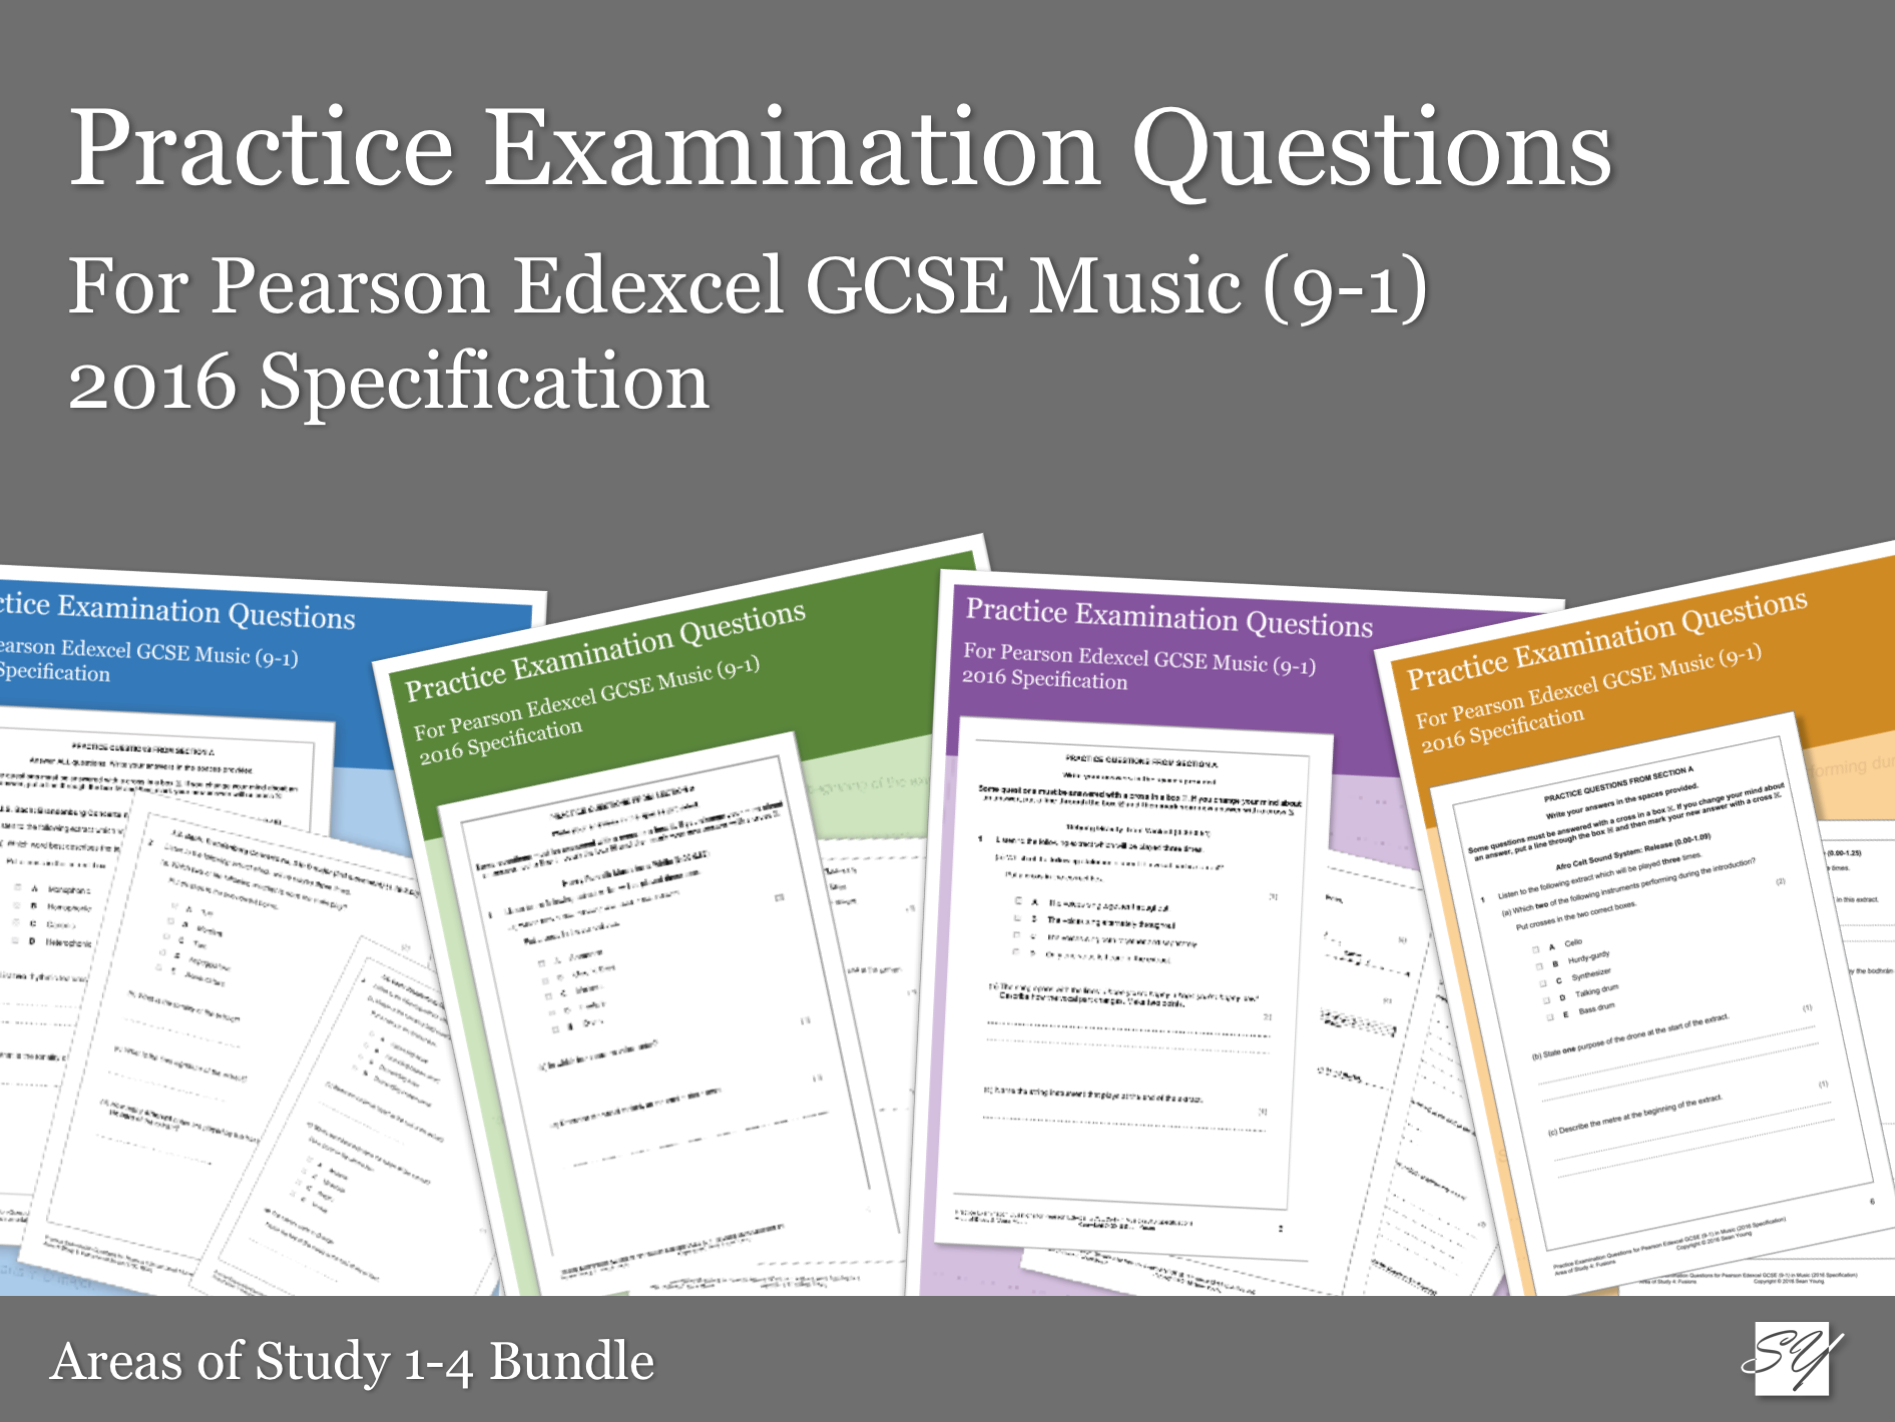 Practice Listening Questions Bundle for Pearson Edexcel GCSE Music (2016 Specification) - Areas of Study 1-4 Bundle